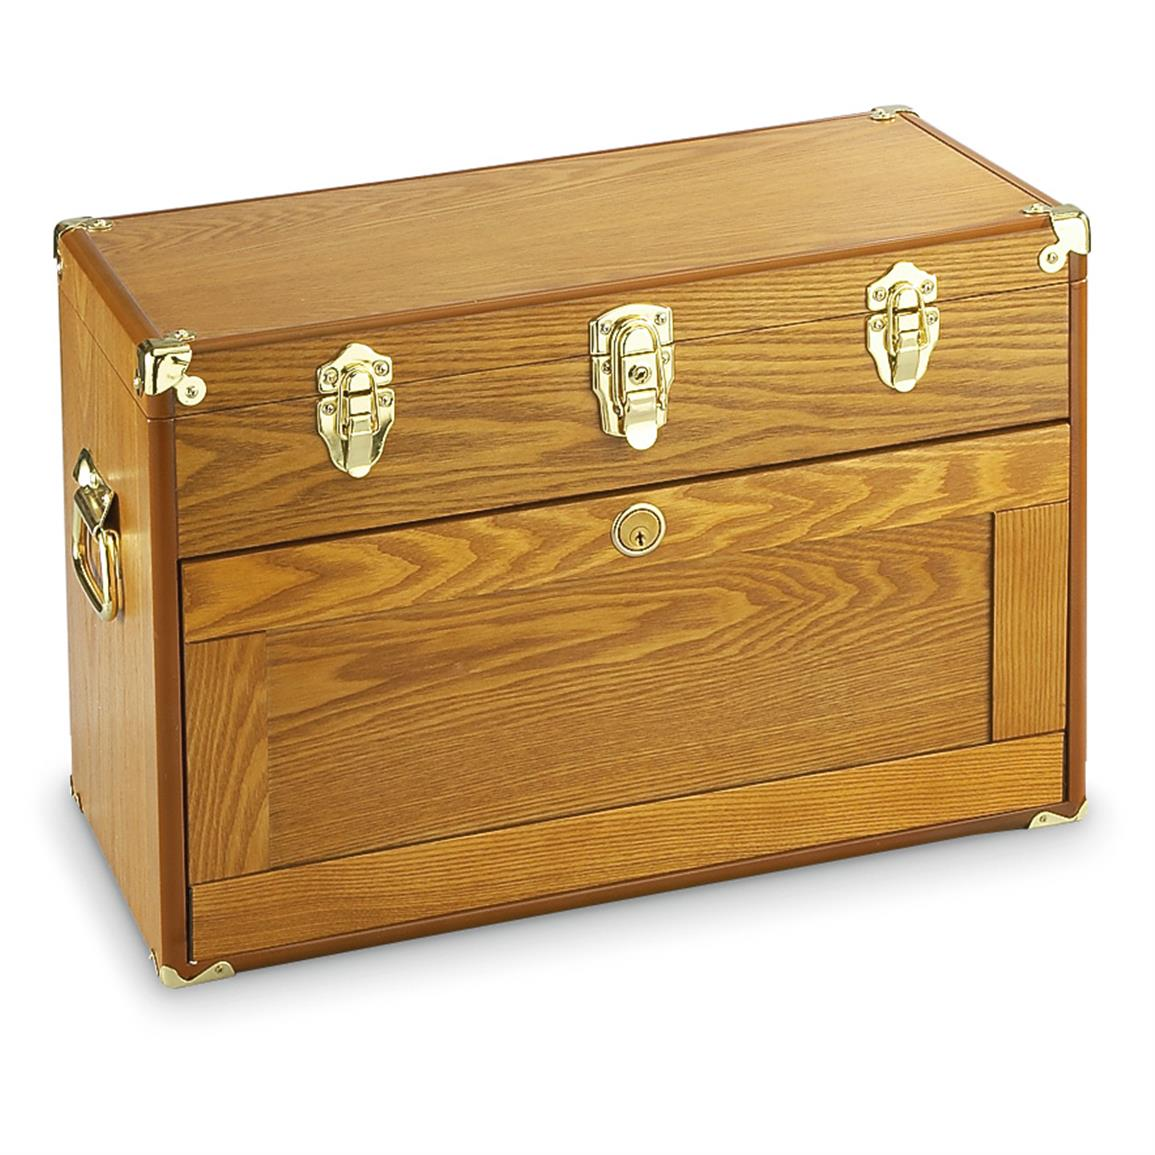 Light Oak • 4 drawers all lock with stowing, slide-under door